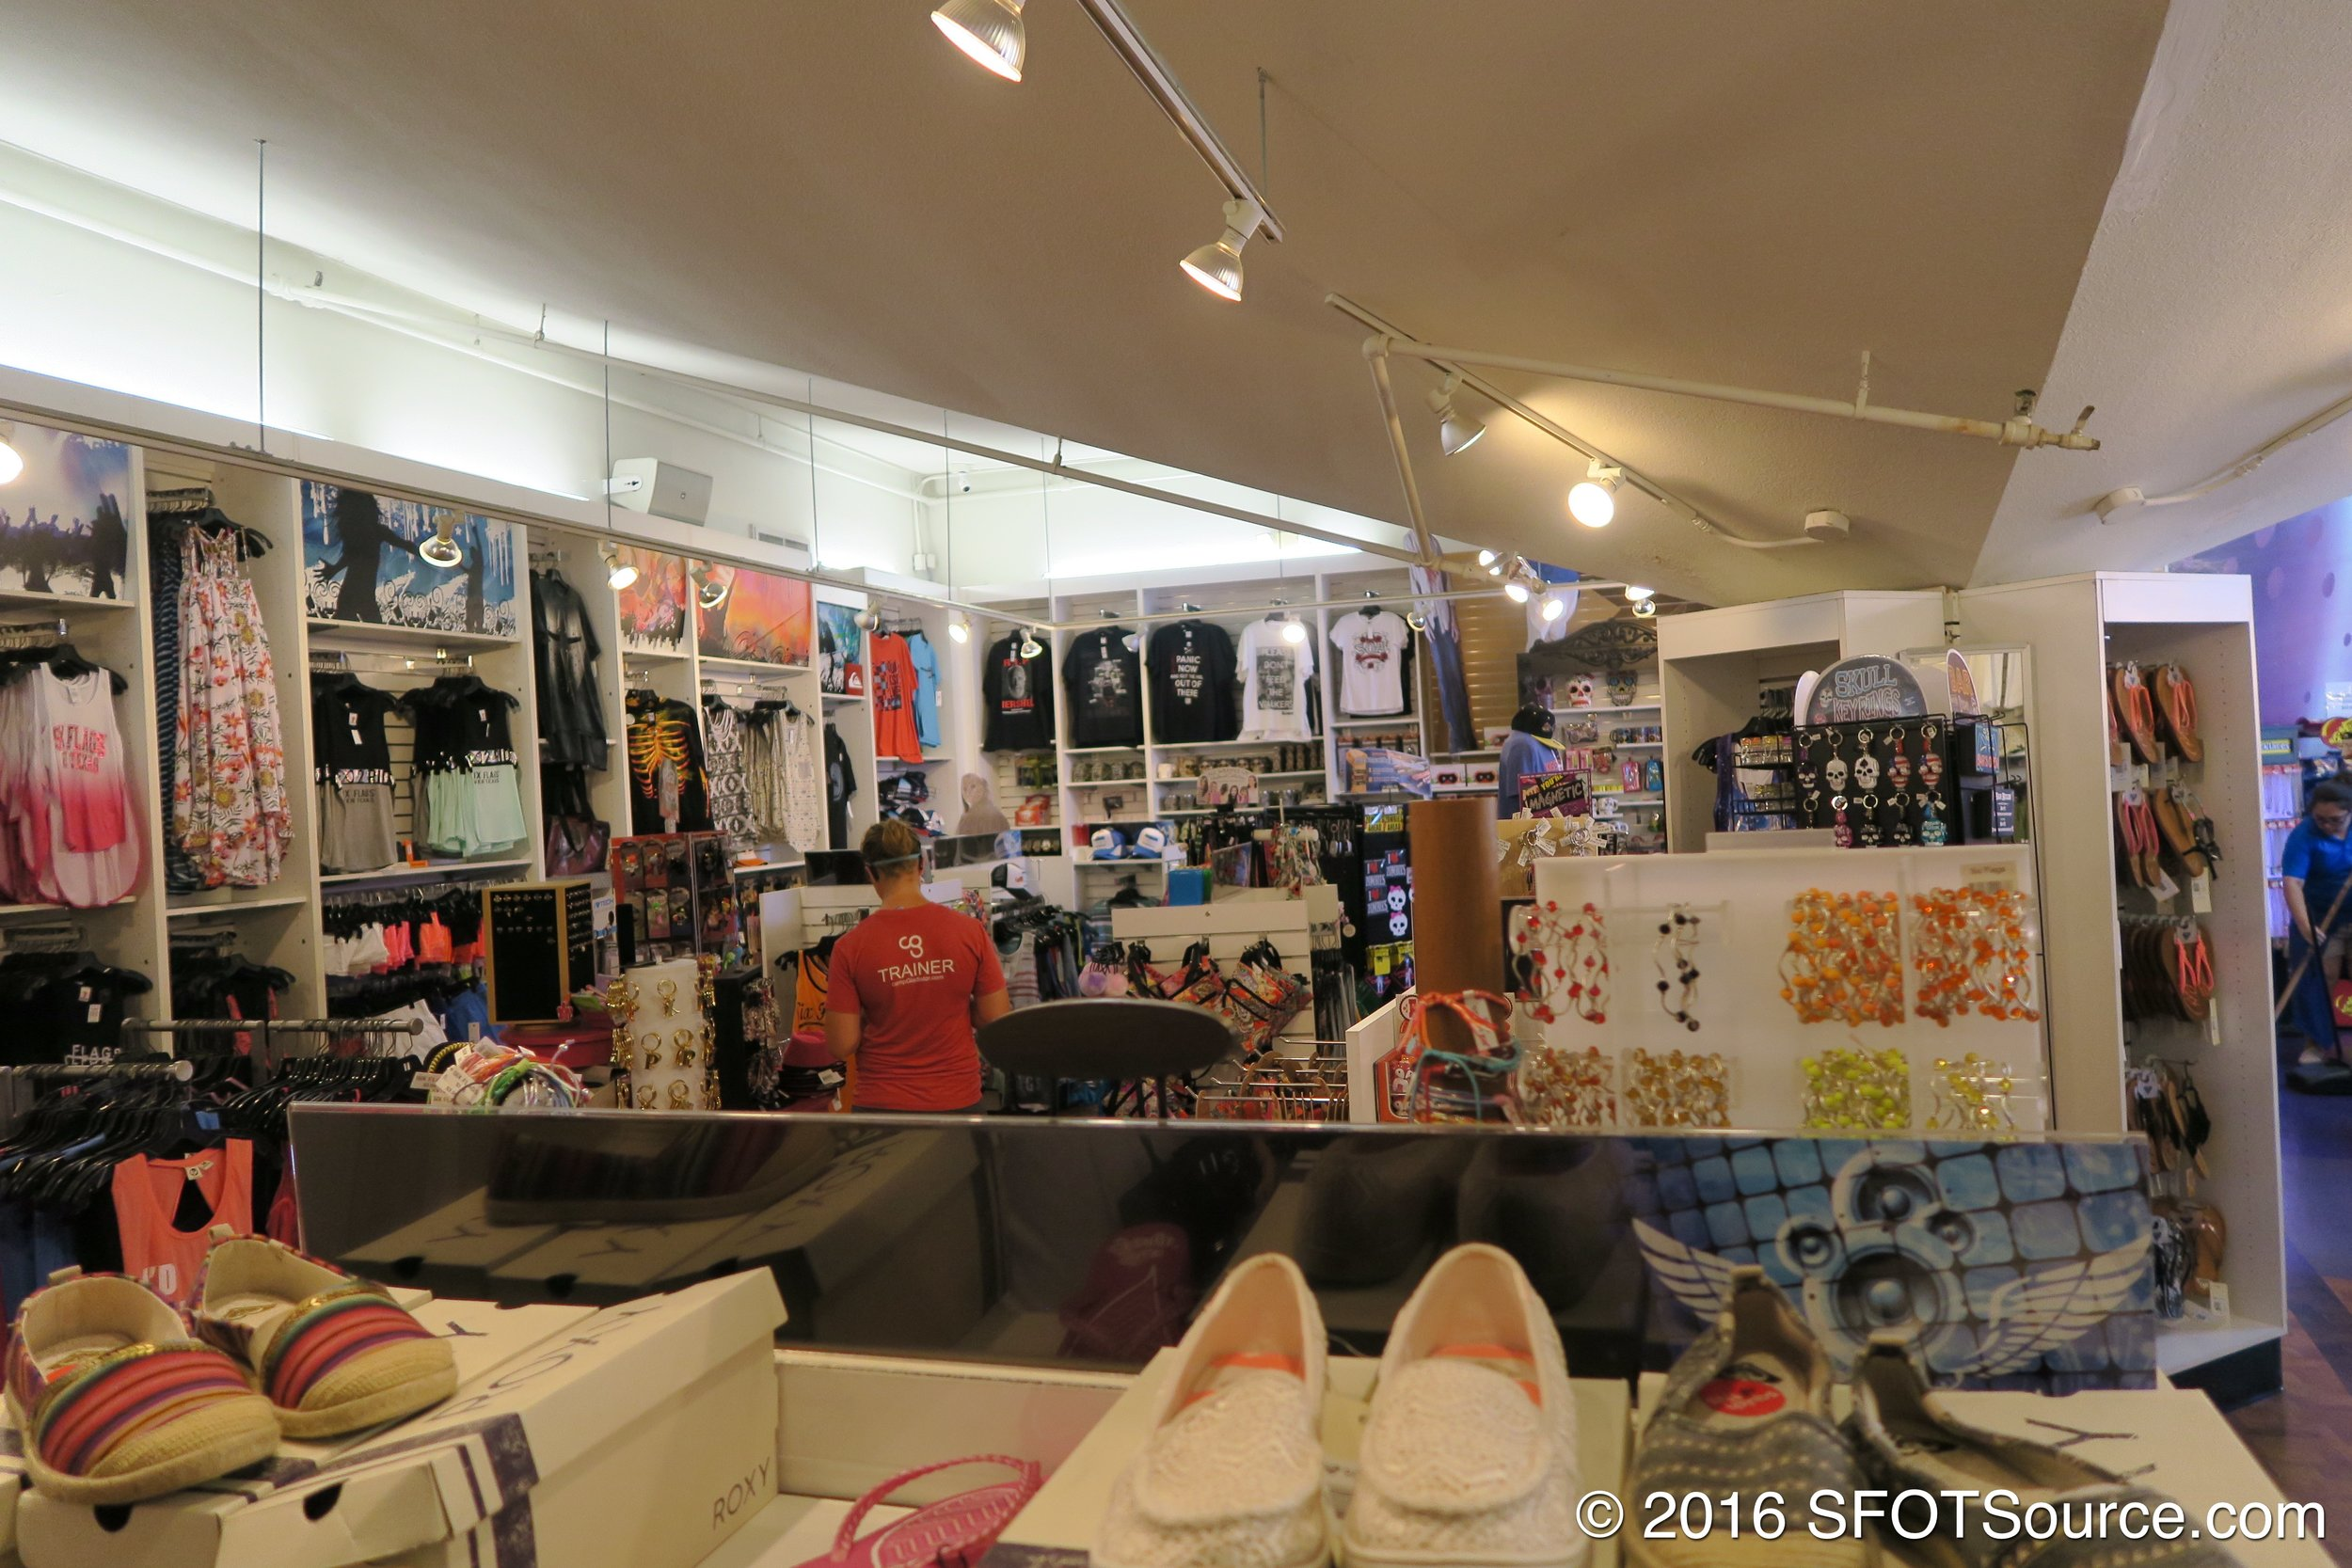 Studio 6F features apparel and other items.